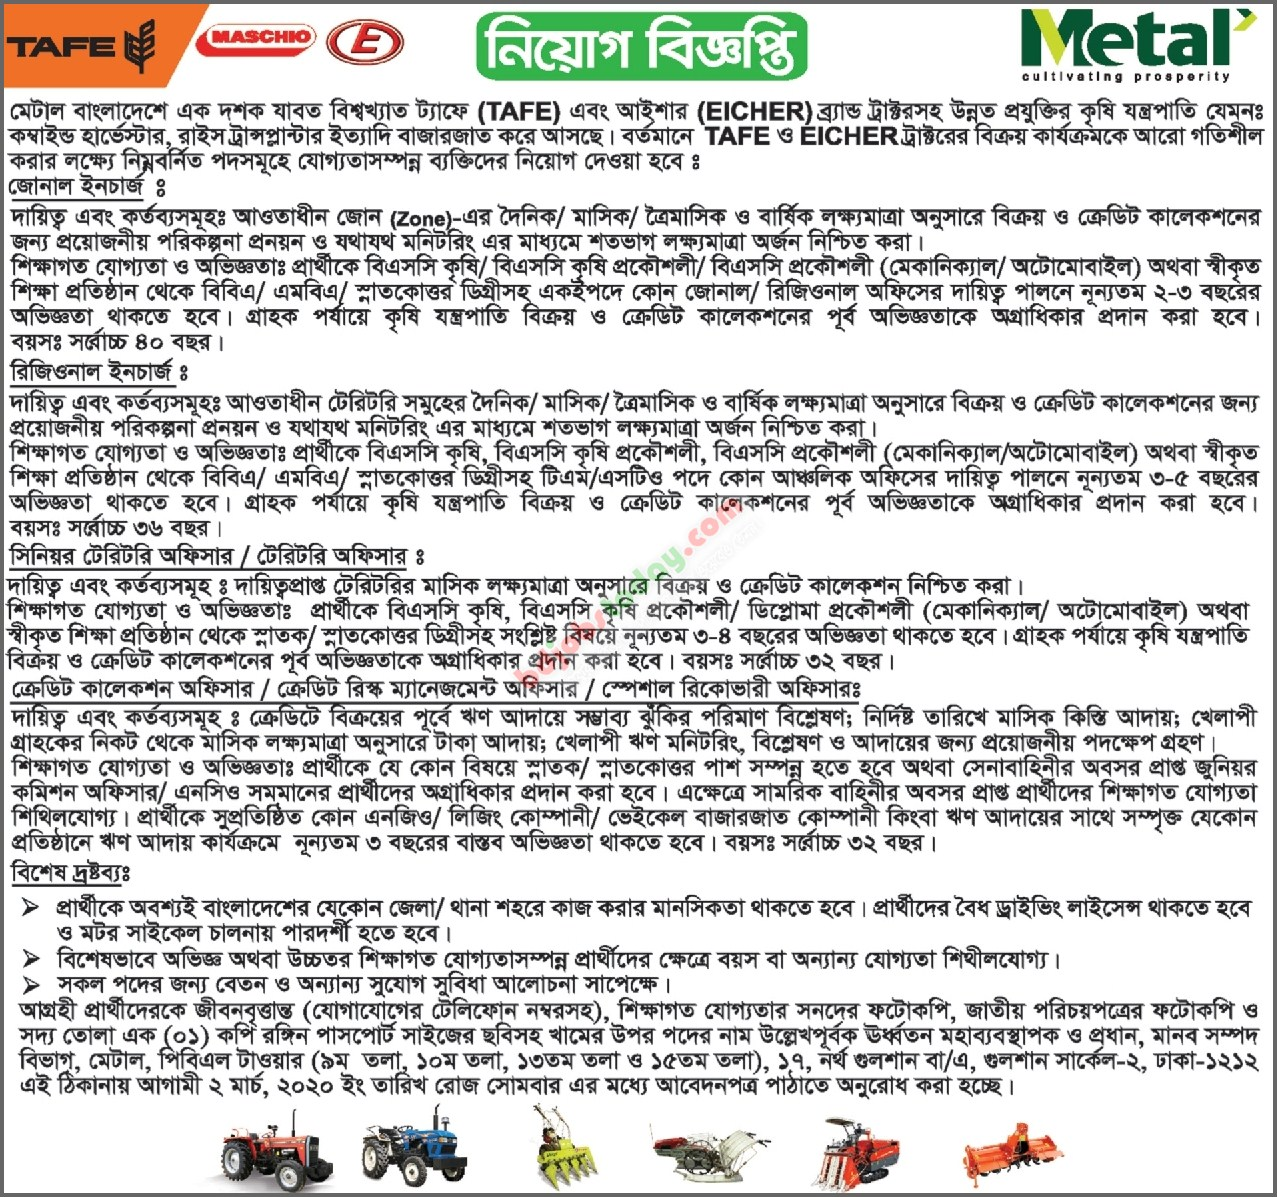 Metal Pvt Ltd Job Circular 2020